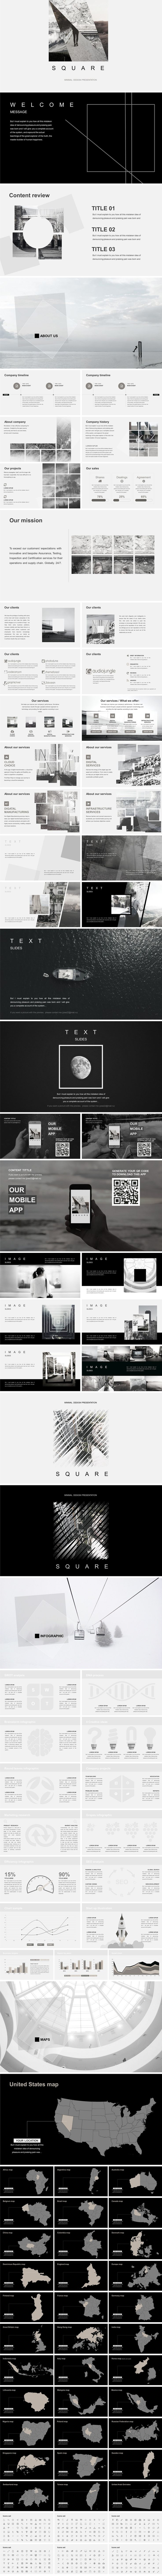 Square Minimal Powerpoint Template on Behance